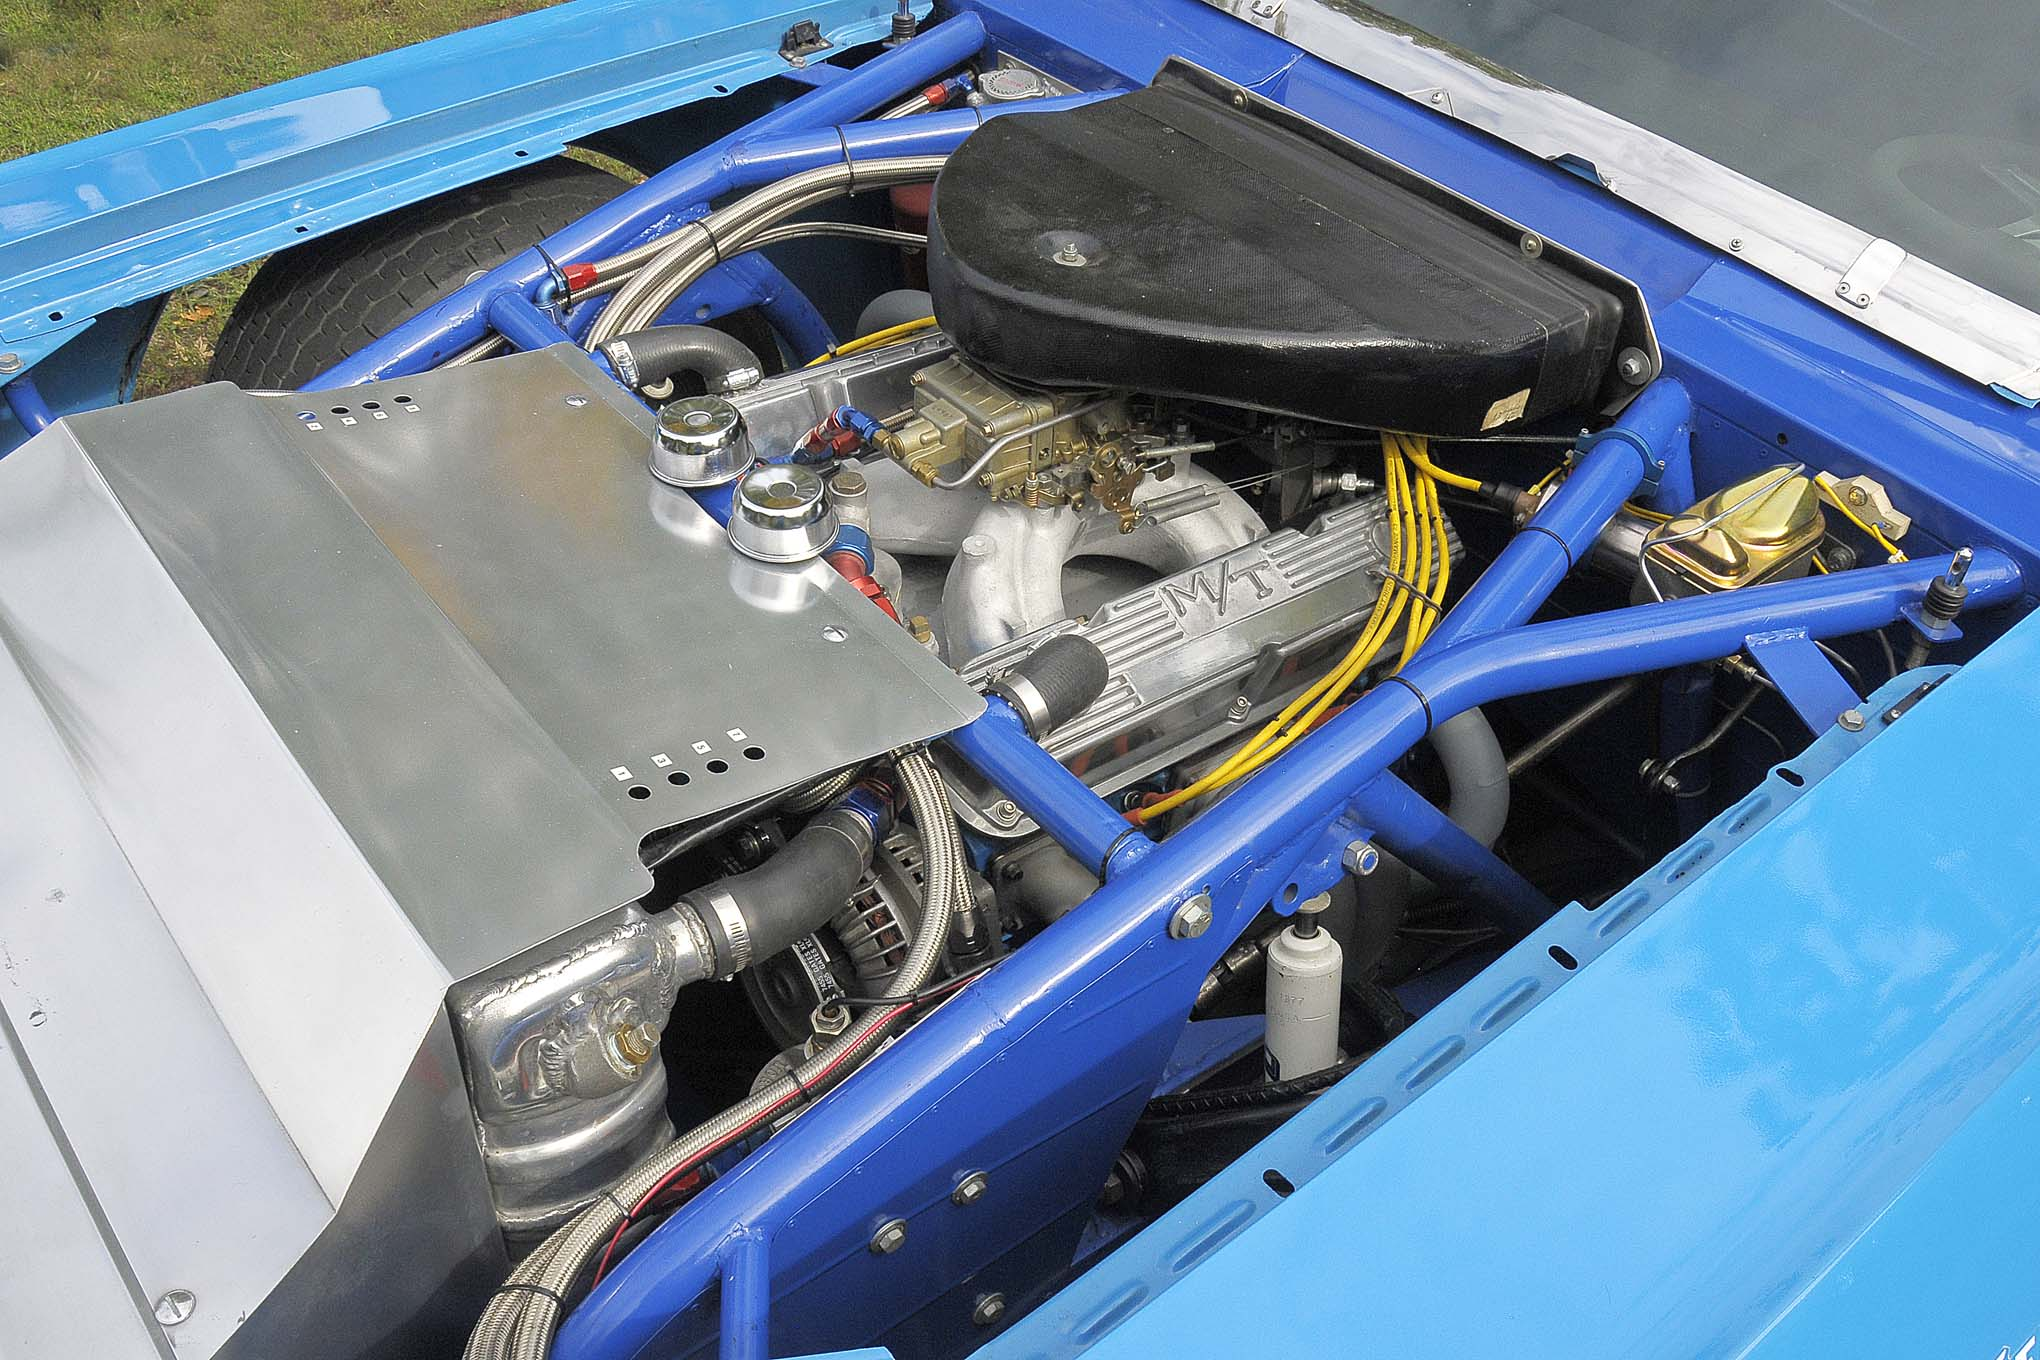 The elaborate aluminum ductwork funnels the outside air through the radiator. The engine is the period-correct W2 355 small-block capable of about 650 hp (roughly 300 less than the modern version of the same motor). Since NASCAR required small-blocks starting in the early '70s it made sense for this kit car to be offered with one.